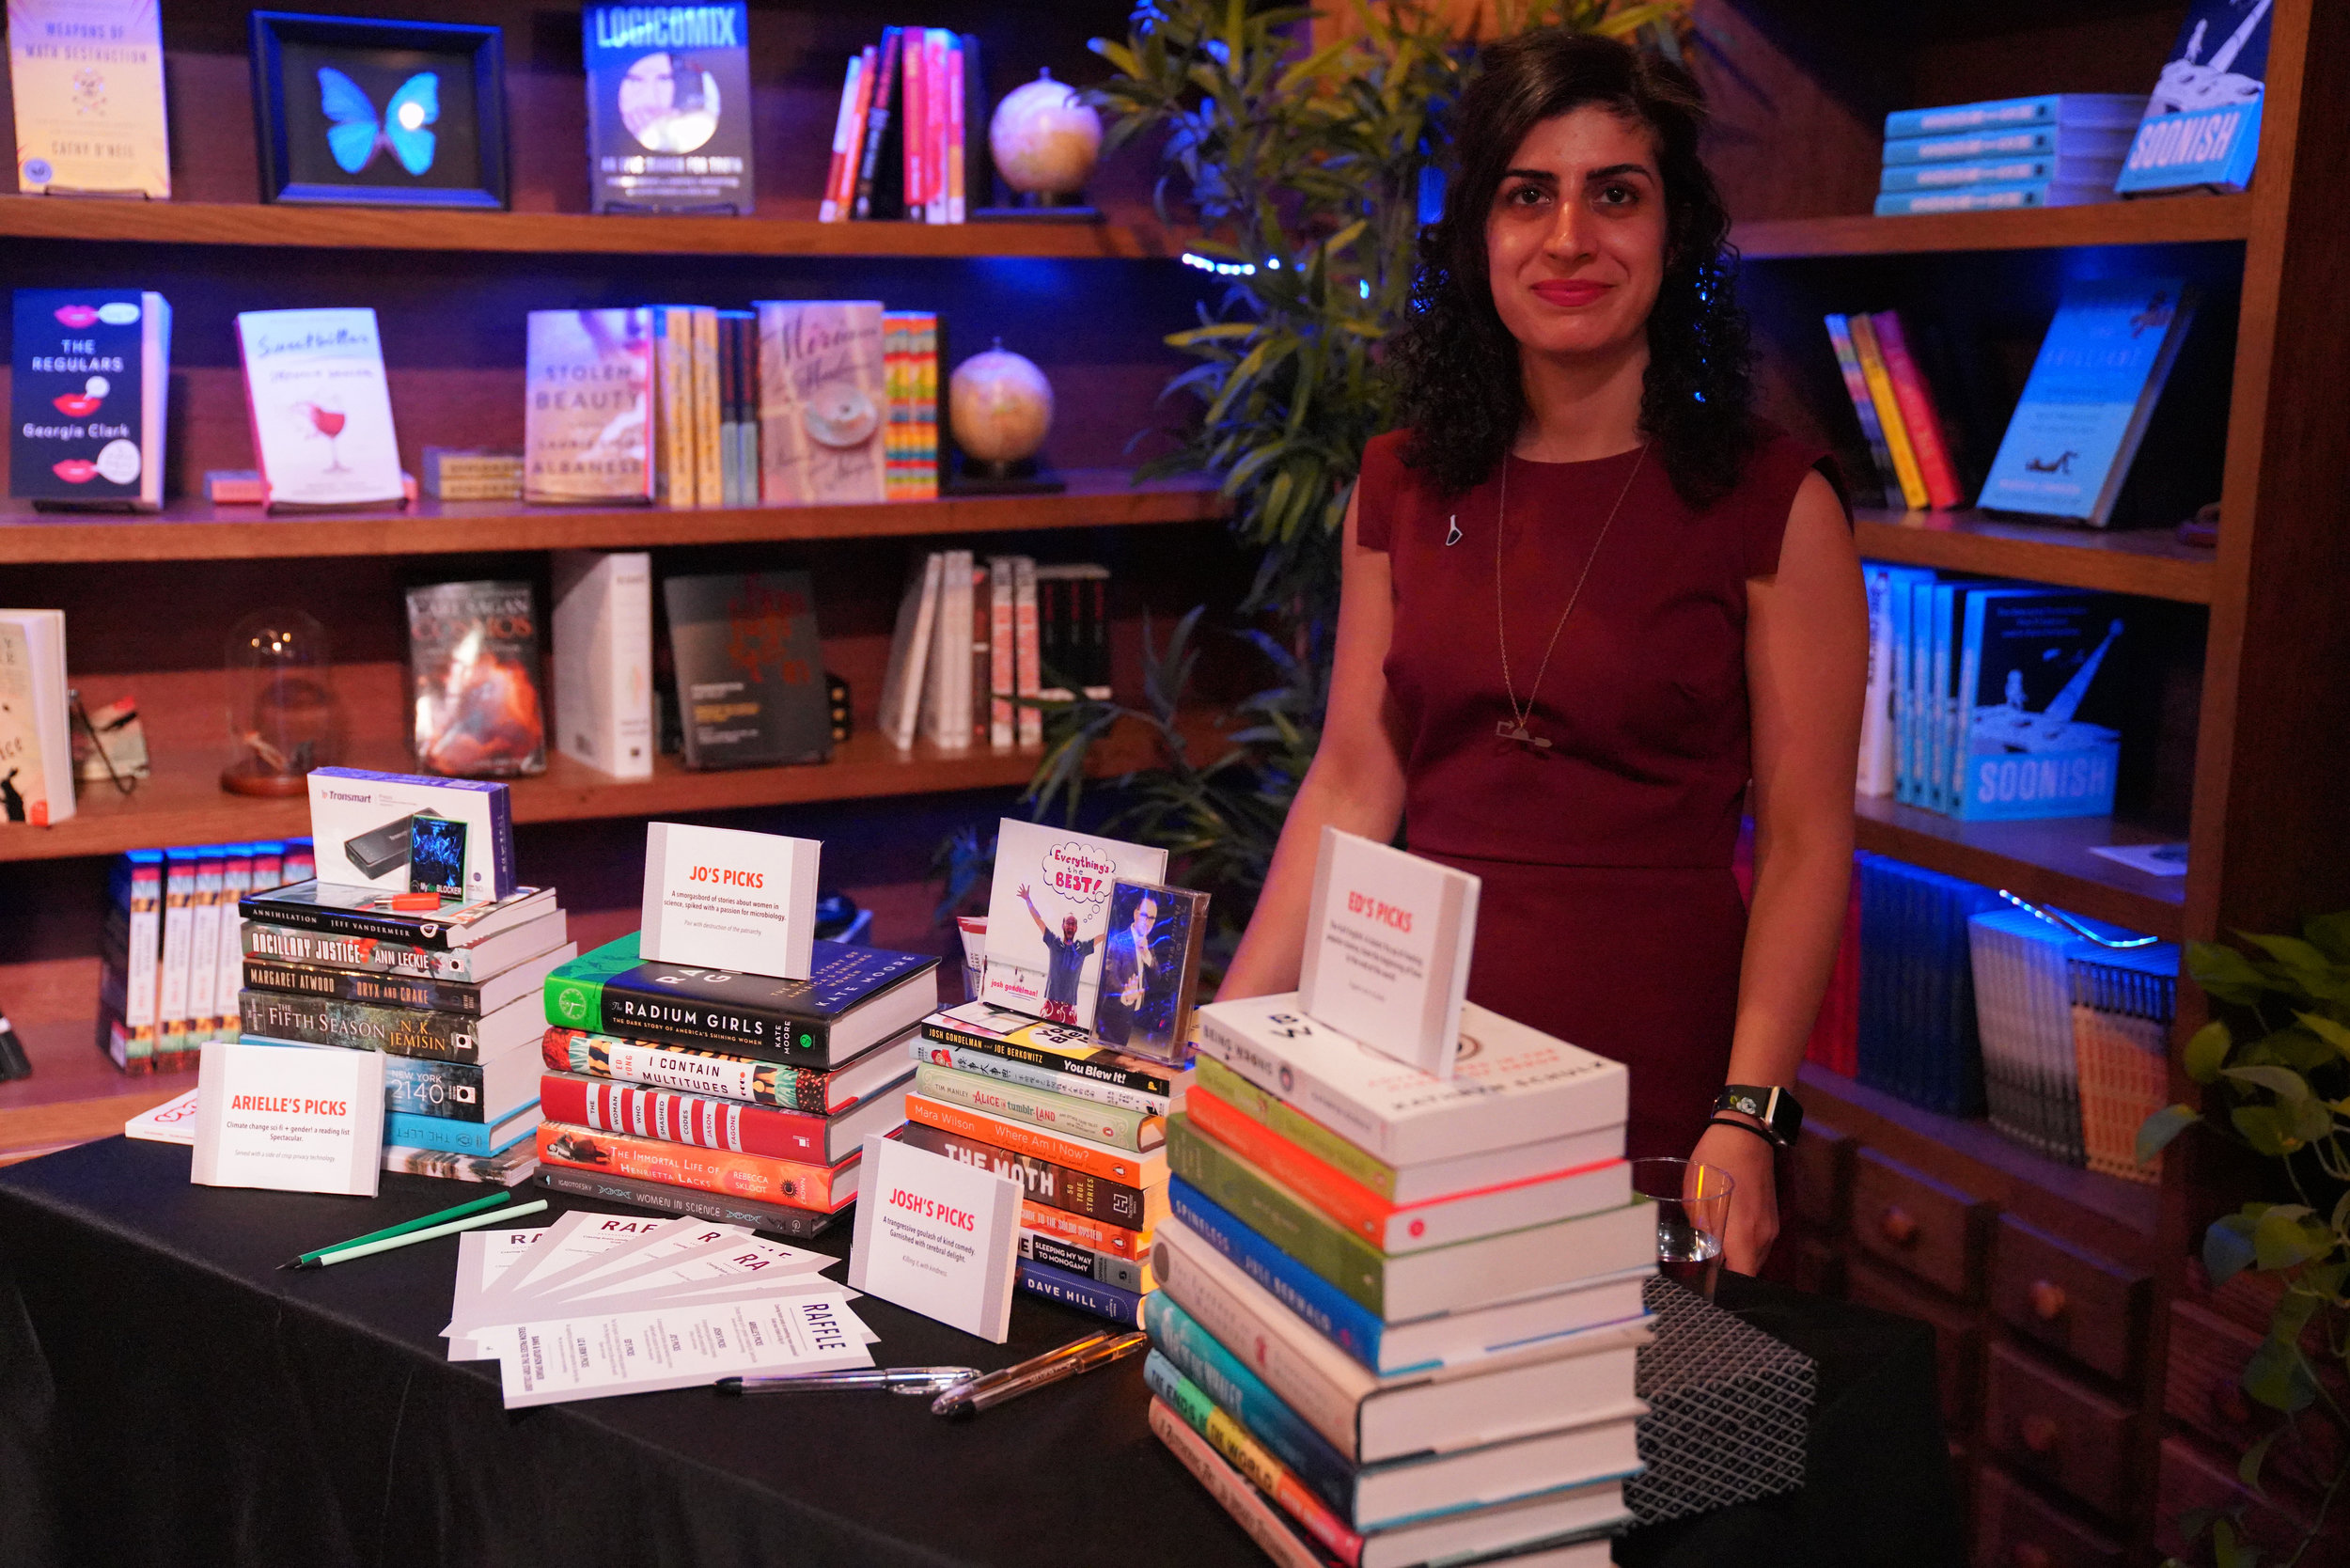 Story Collider DC producer and biologist Maryam Zaringhalam keeps an eye on the valuables.